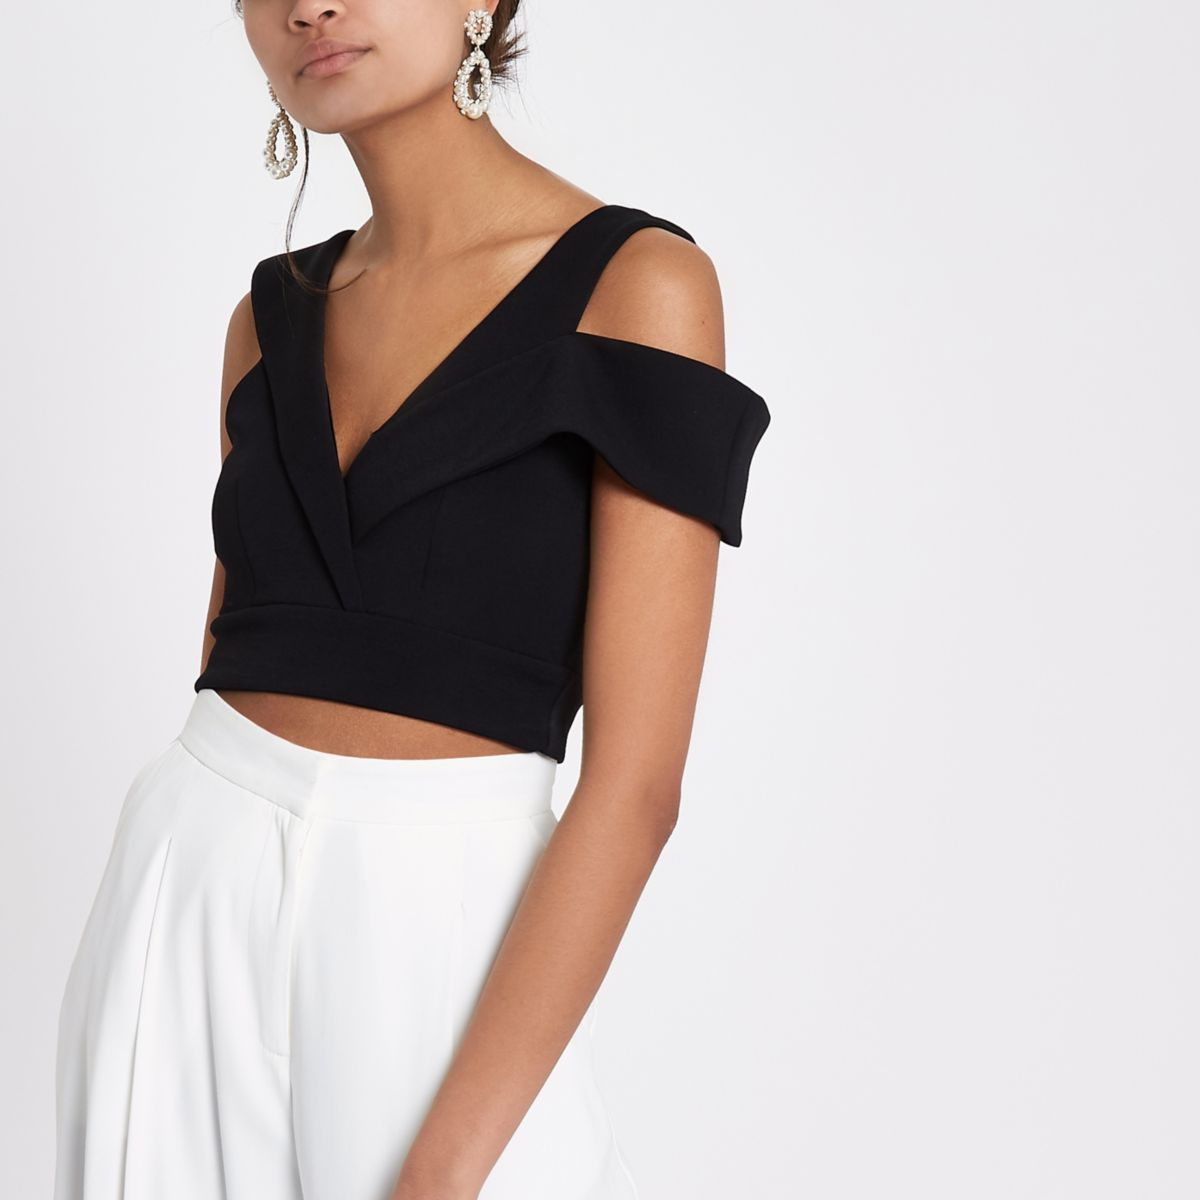 Black tailored detail cropped bralette